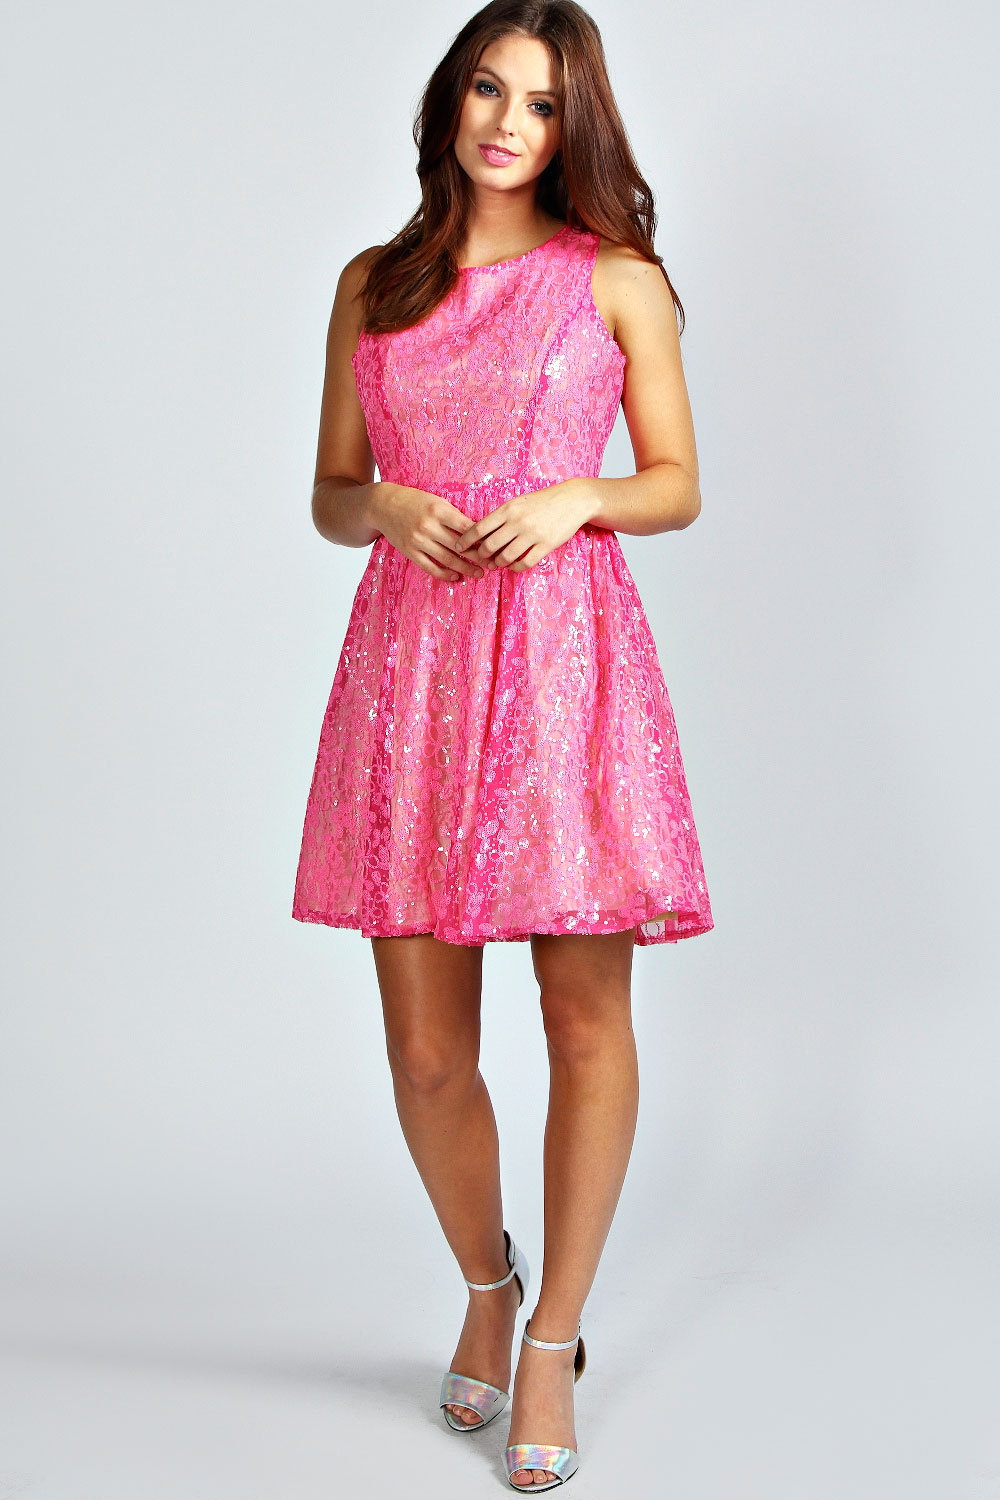 Boohoo Nadia Neon Floral Sequin Skater Dress In Pink | eBay